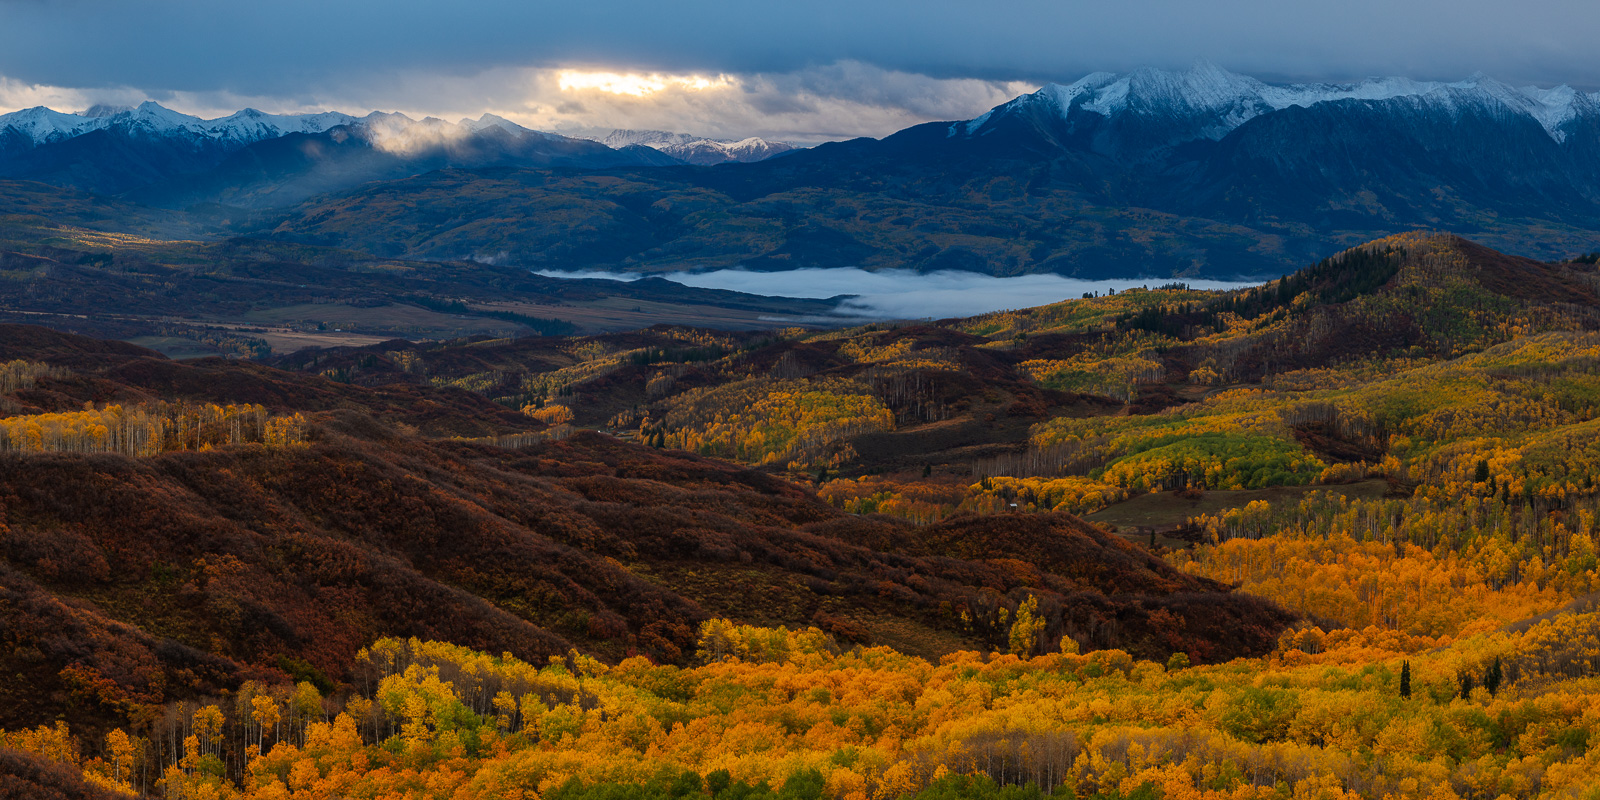 Aspen Trees, Autumn, Carbondale, Chair Mountain, Colorado, Fall, Fall Colors, Fog, Landscape, McClure Pass, Mountains, Ragged Wilderness, Redstone, Snow Capped, Landscape Photography, photo